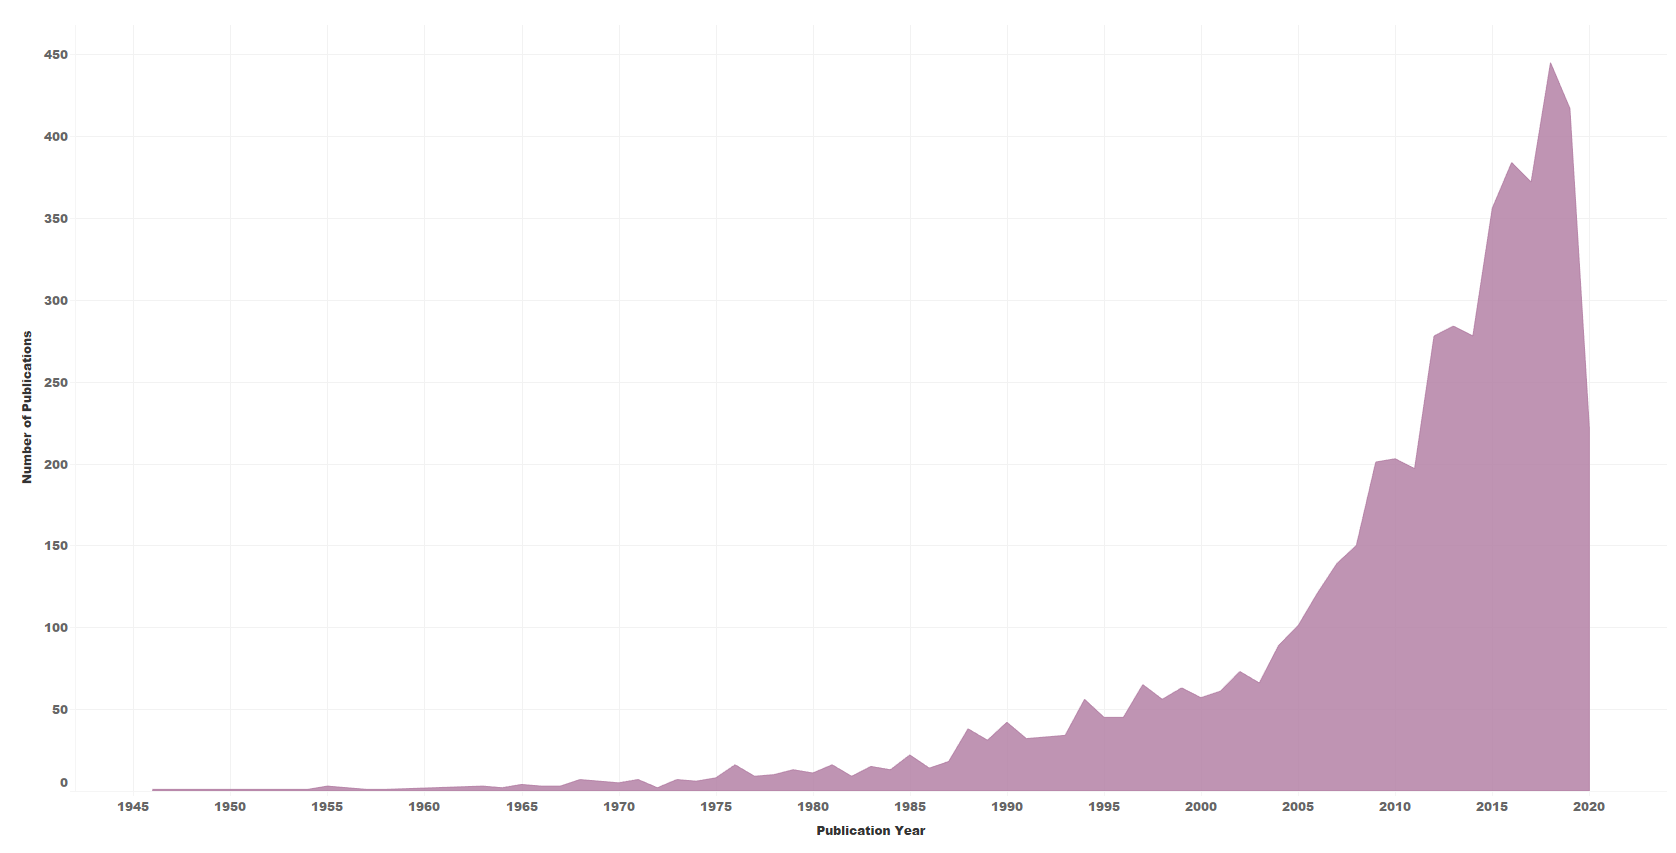 graph of early mobility publications over time (shows dramatic increase)